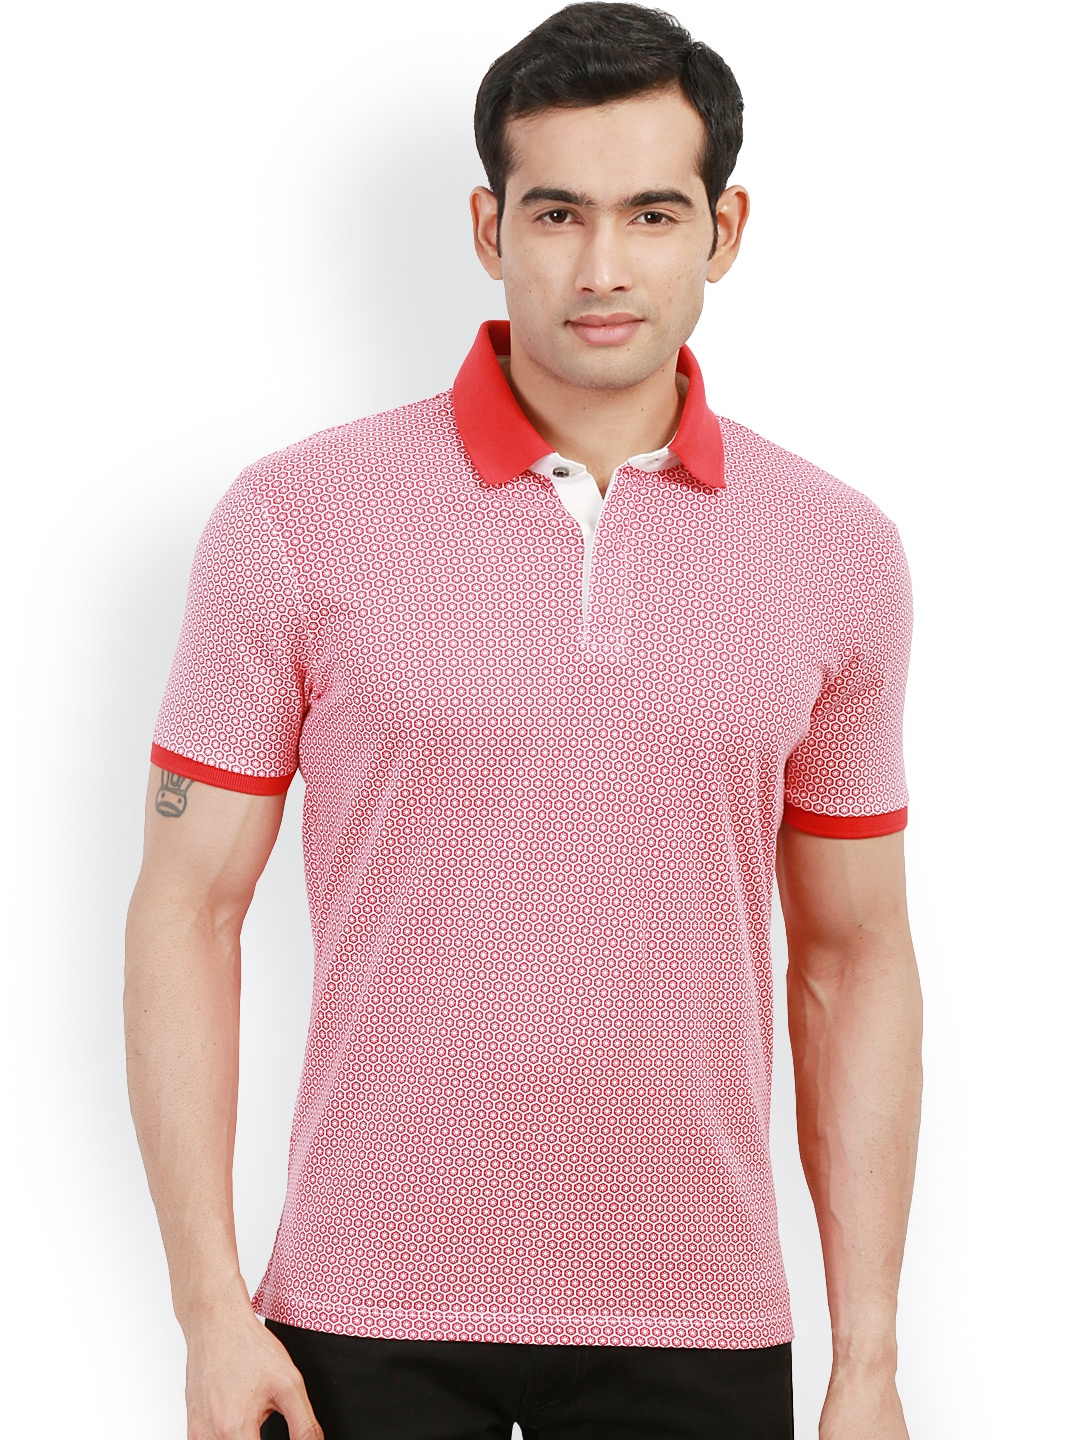 Myntra design classics red white printed slim fit polo t for White fitted polo shirts